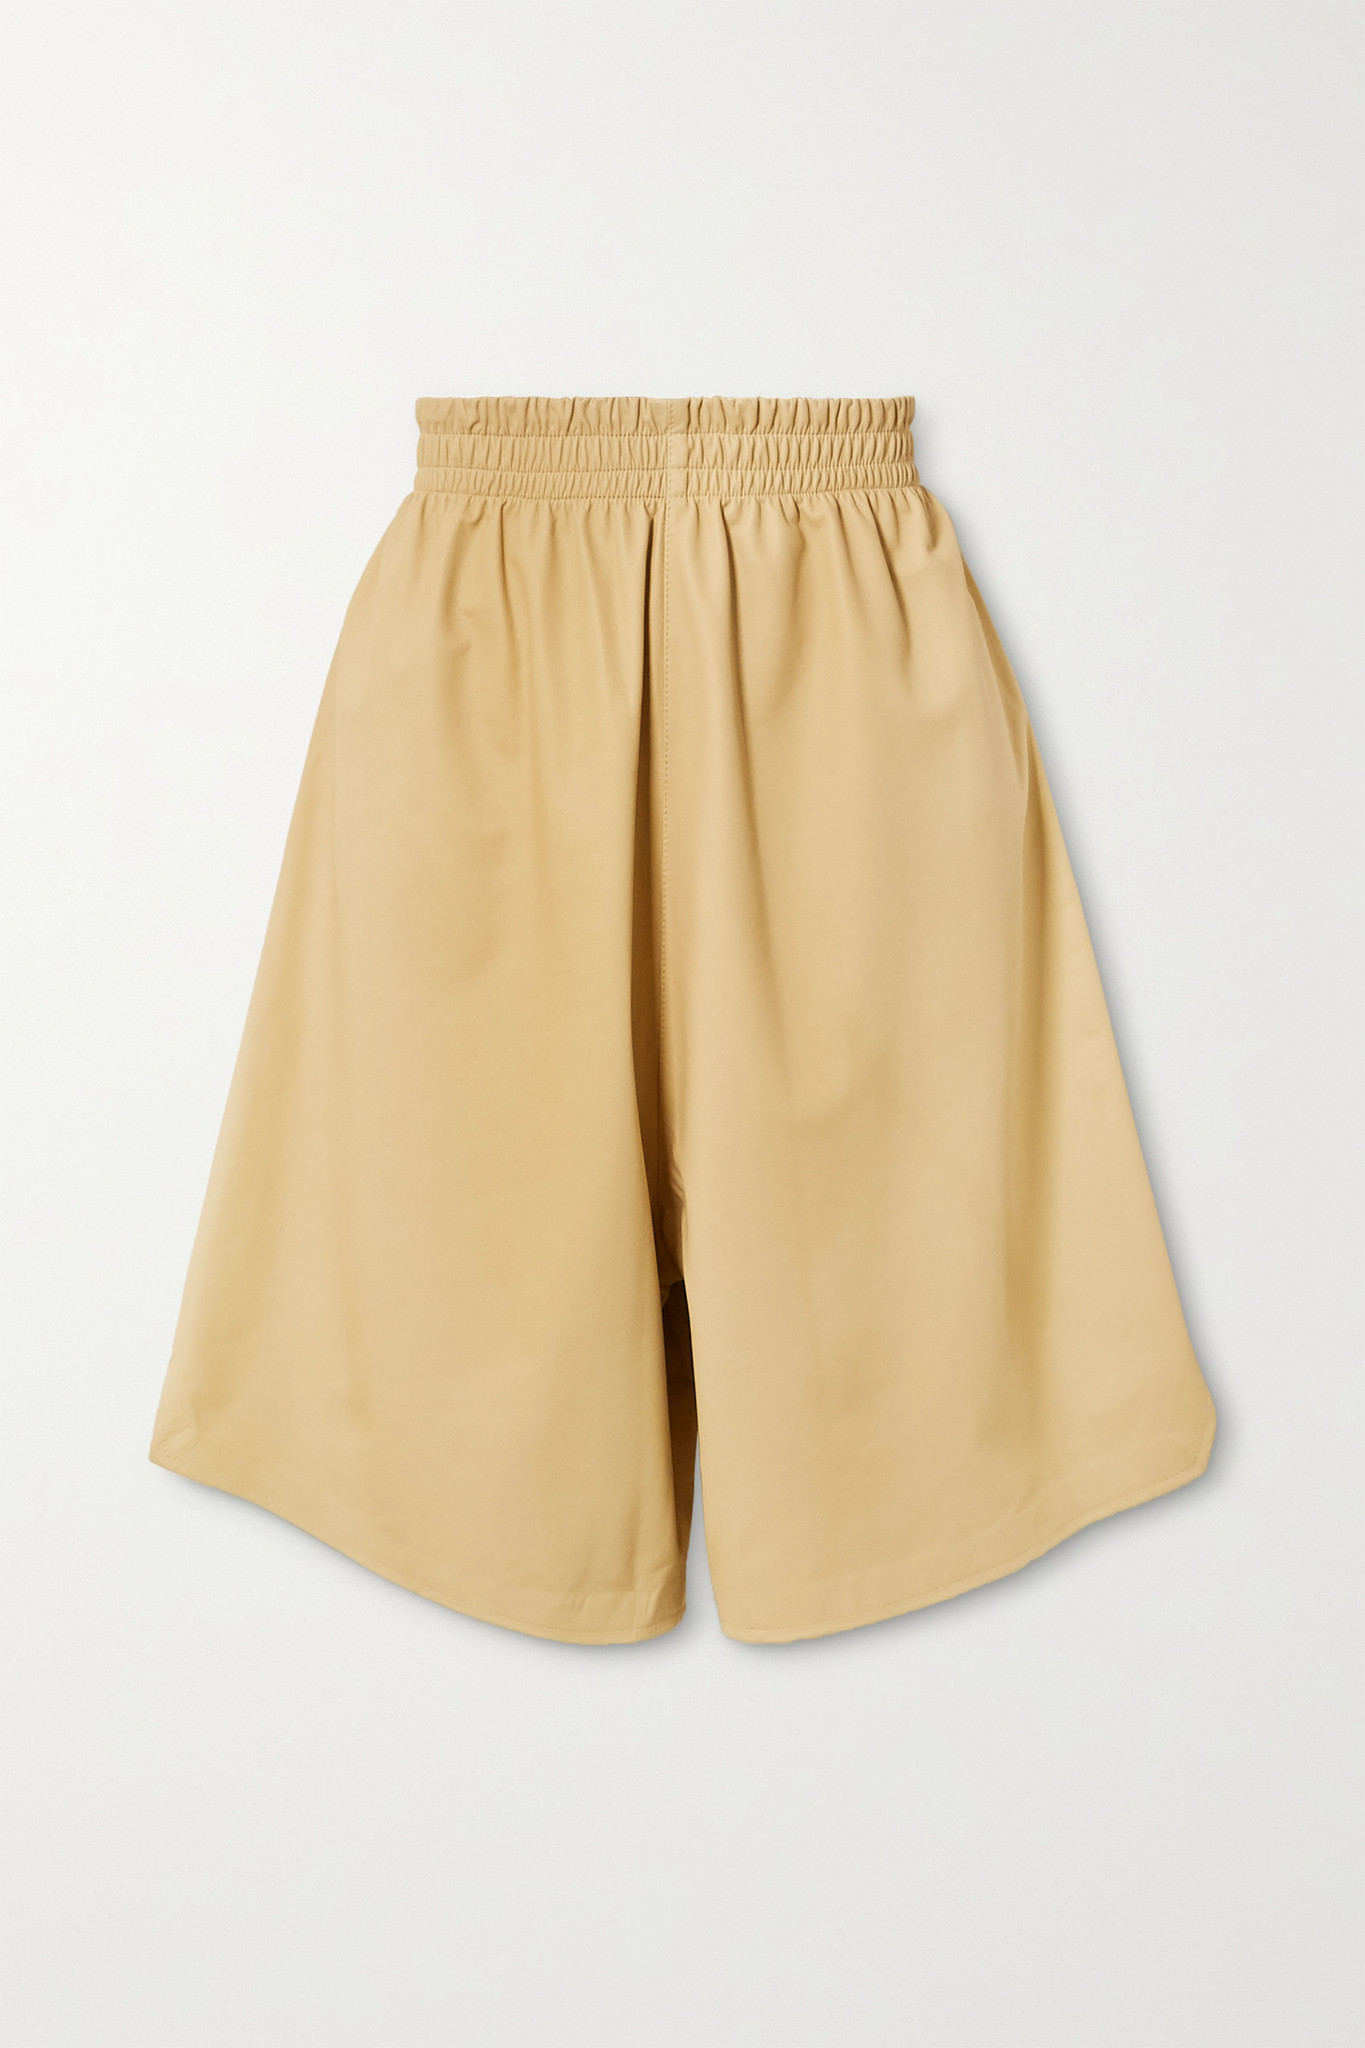 BOTTEGA VENETA - Leather Shorts - Cream - medium